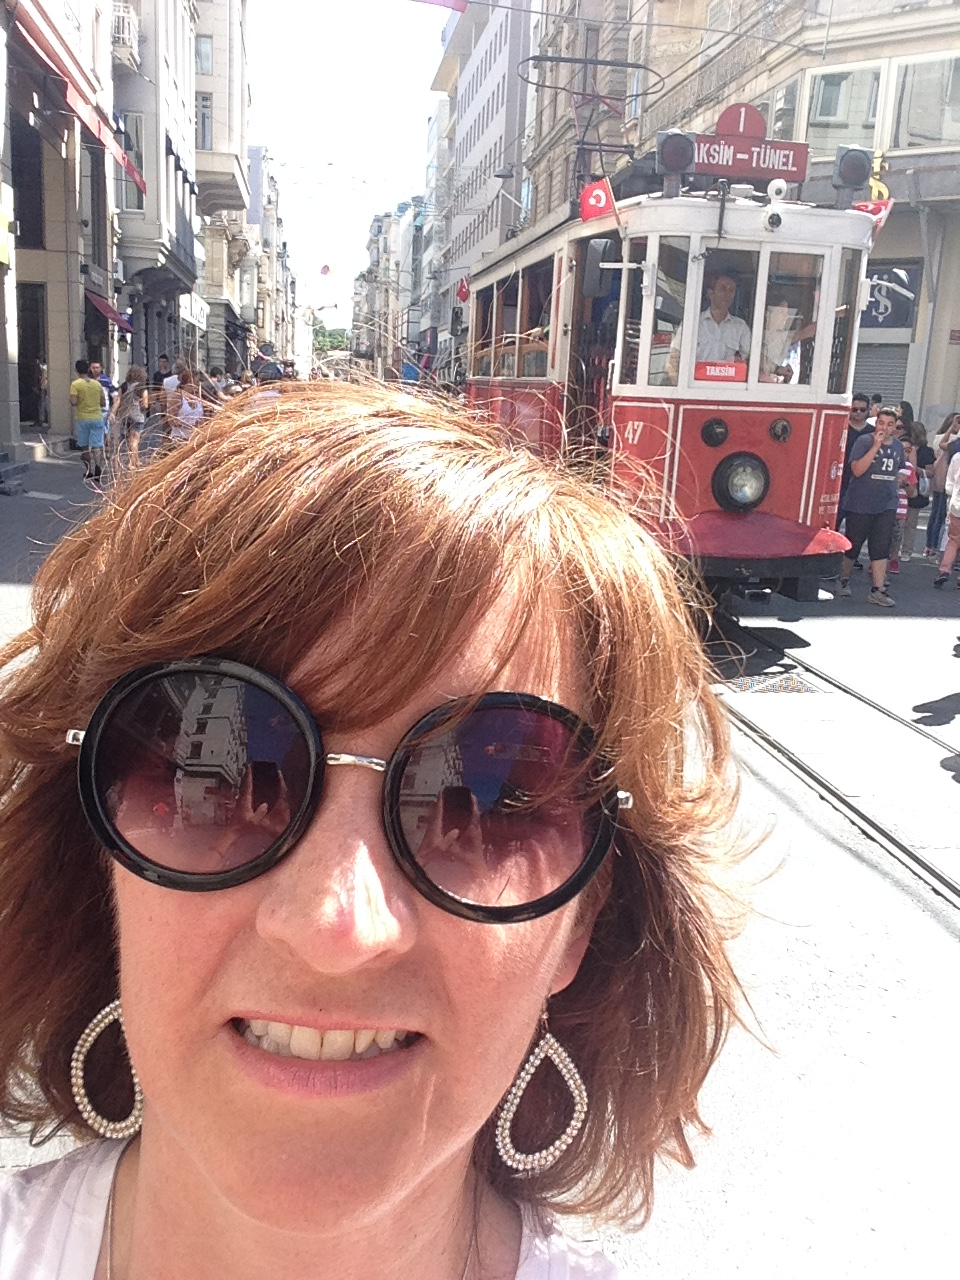 This photo was taken on Istiklal, the well-known pedestrian street in Istabul.